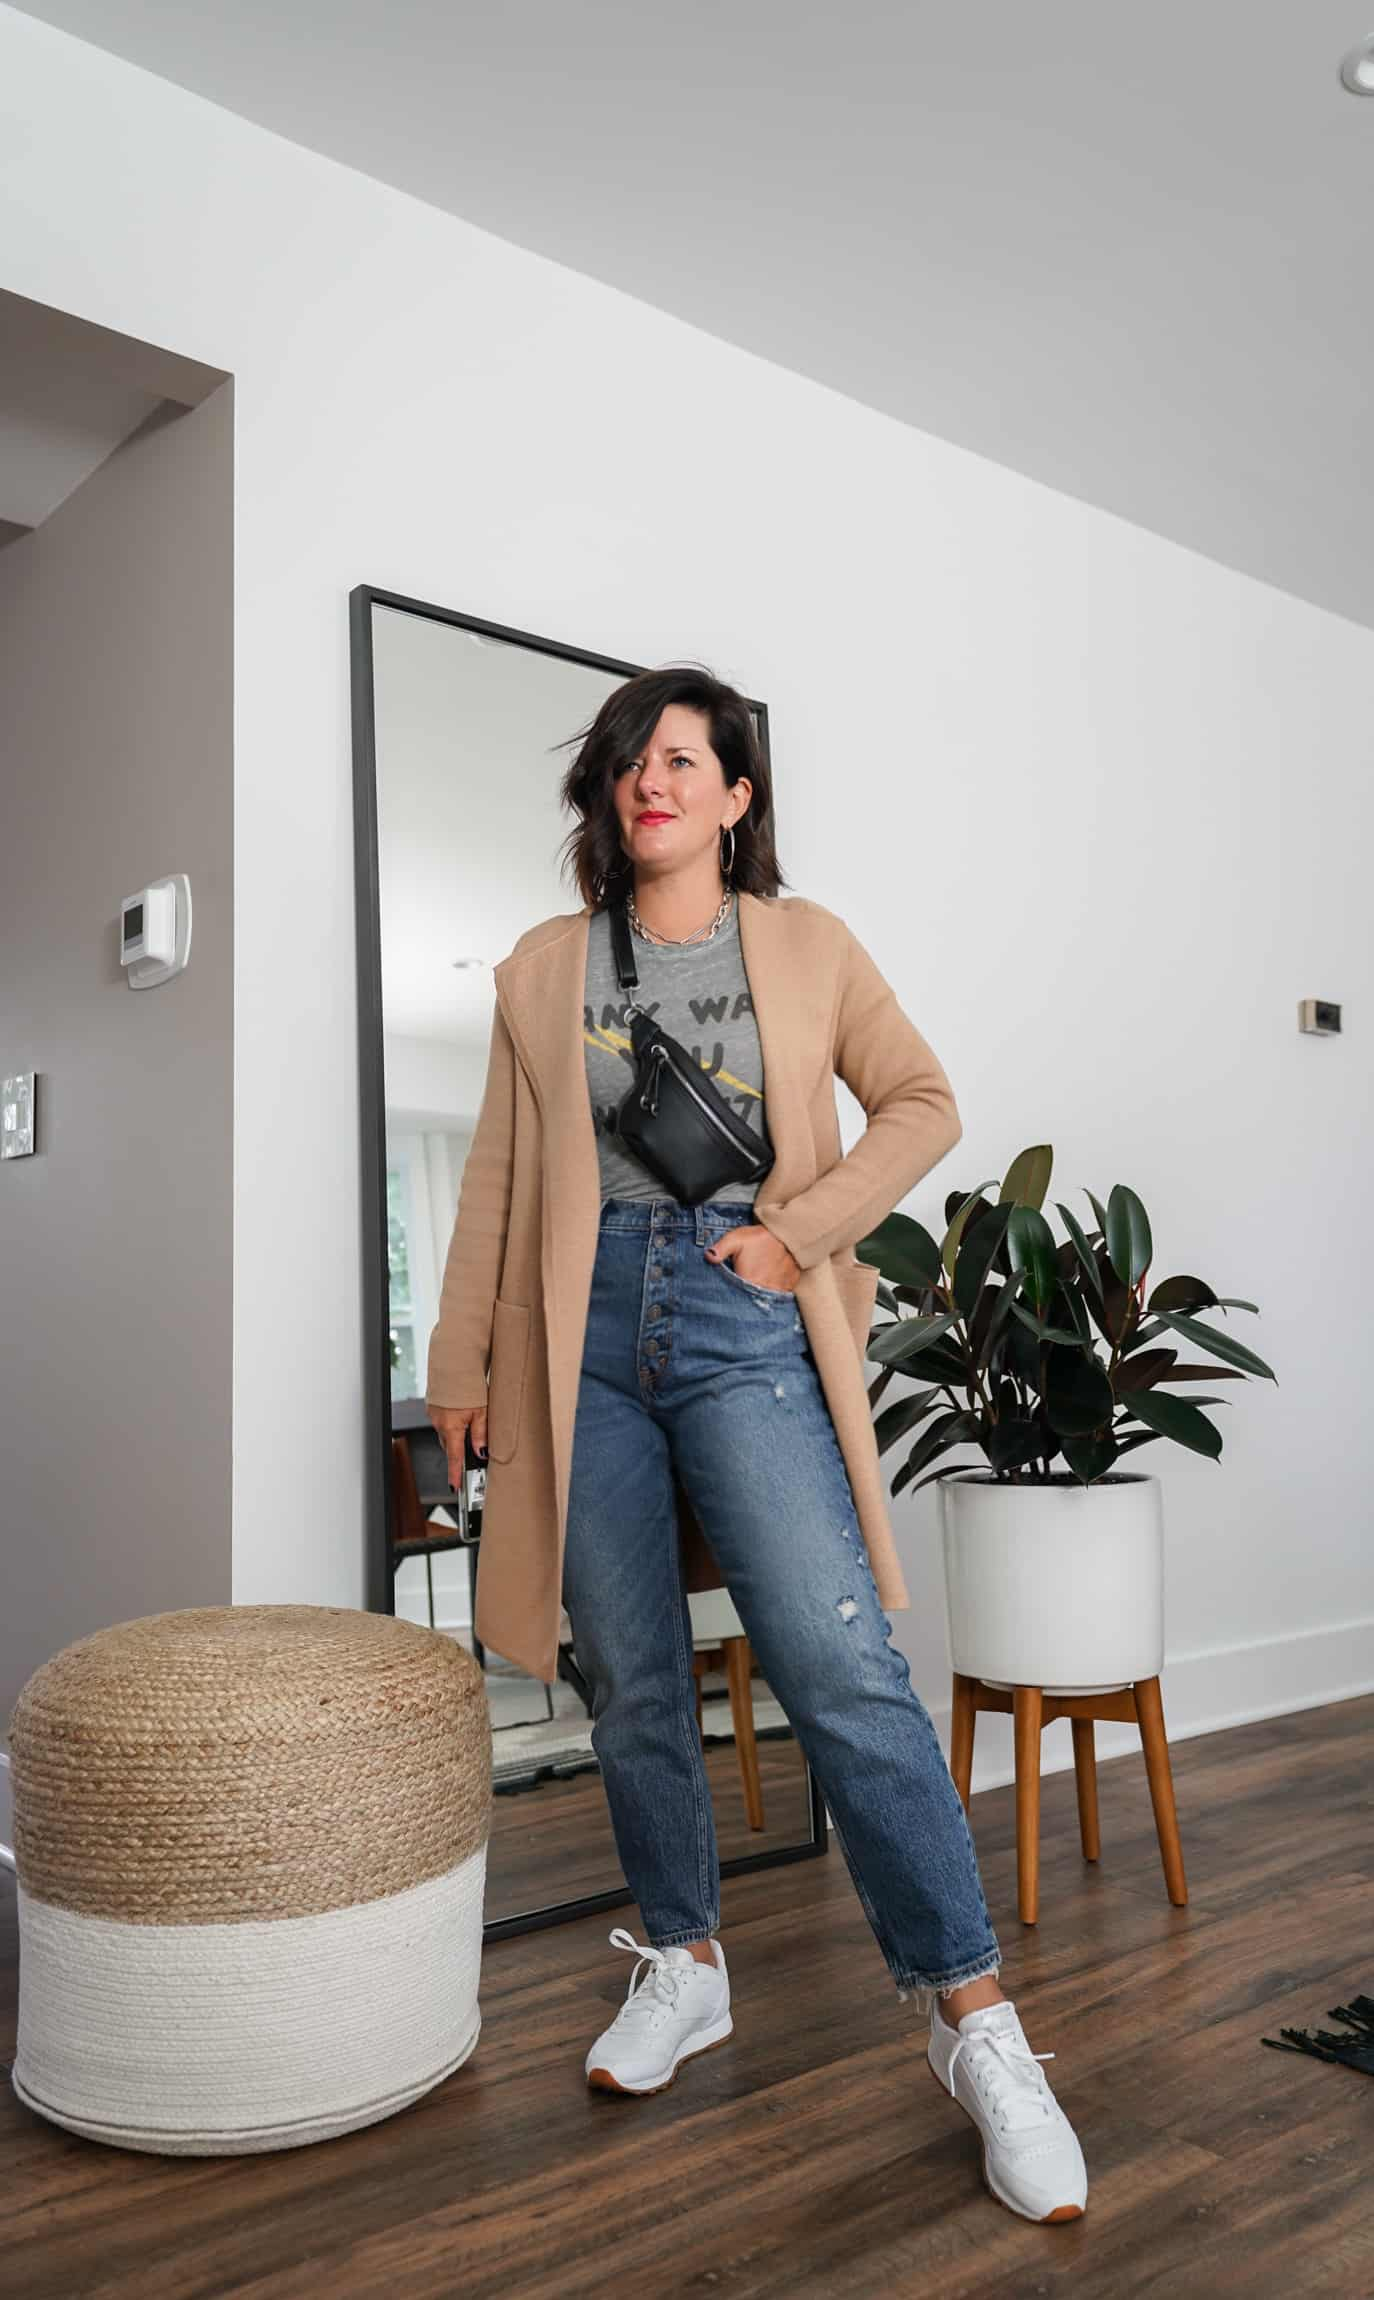 A Lily Love Affair shares how to wear a long cardigan with straight leg jeans, a graphic tee and white sneakers